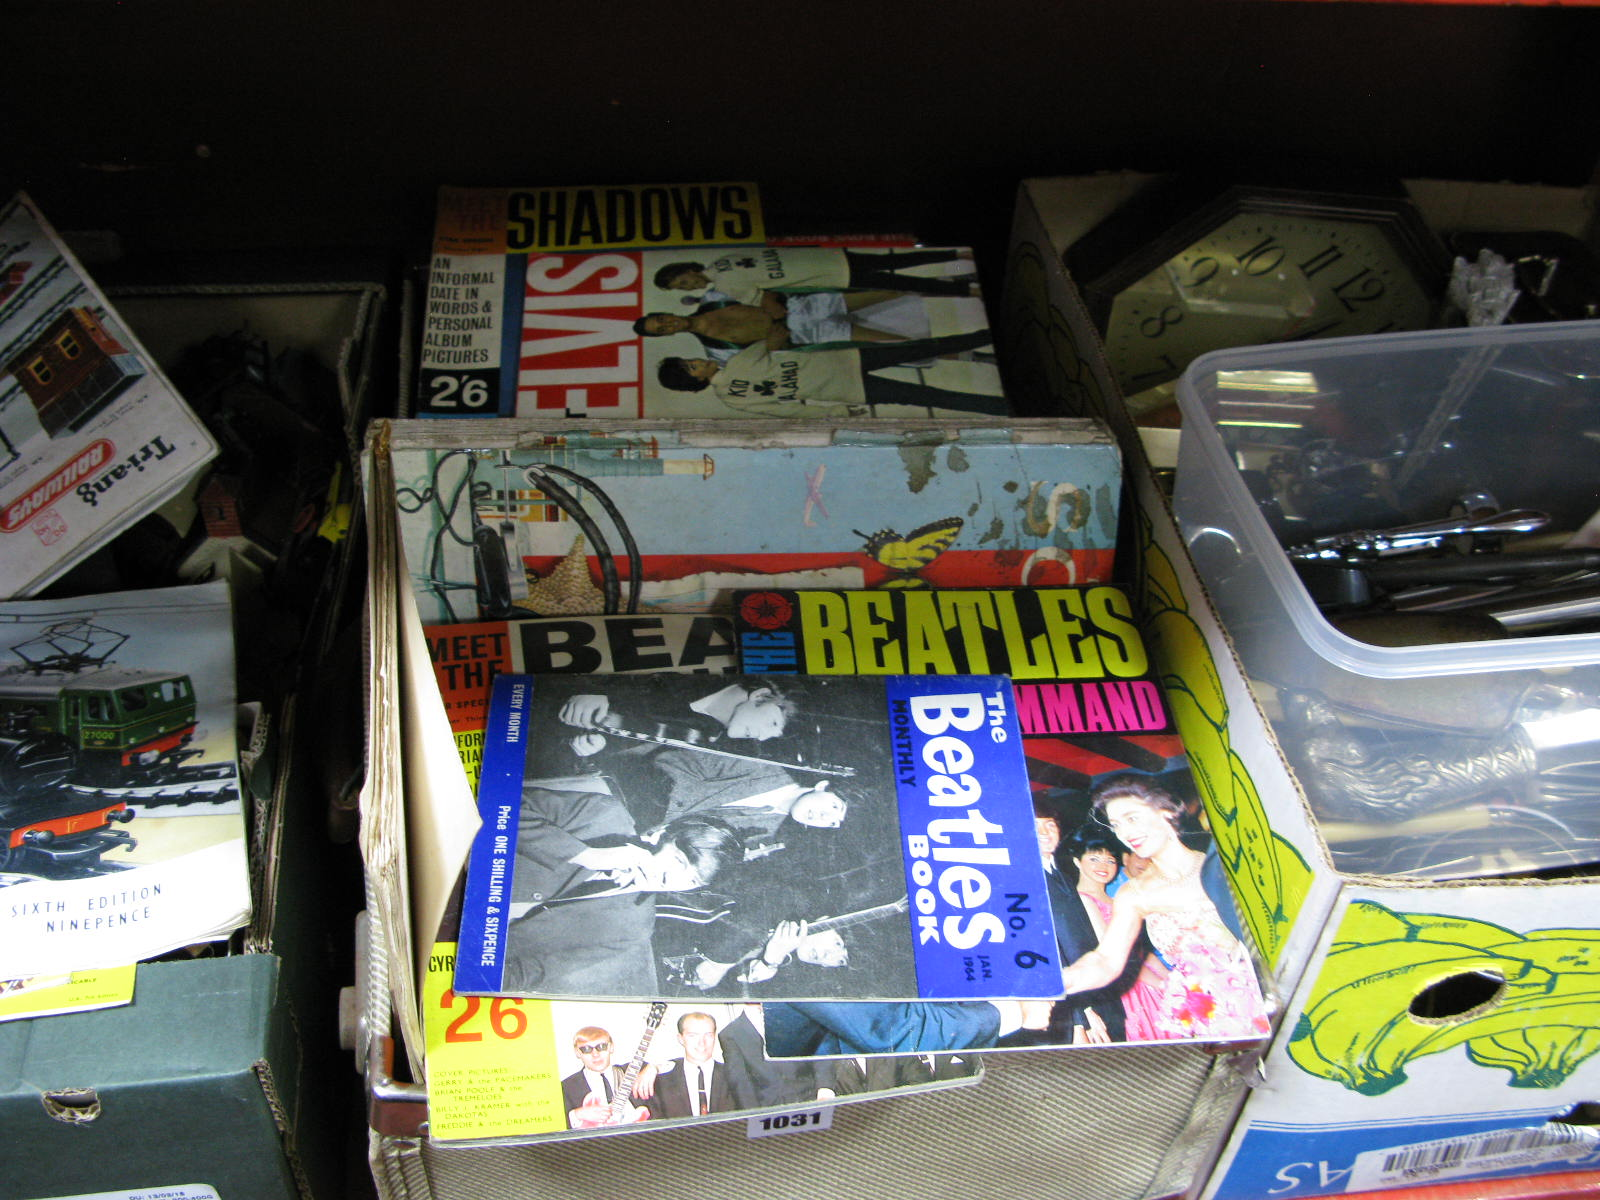 Lot 1031 - A Wagon Train, Beano and other children's annuals, Elvis, beat groups, The Beatles and other